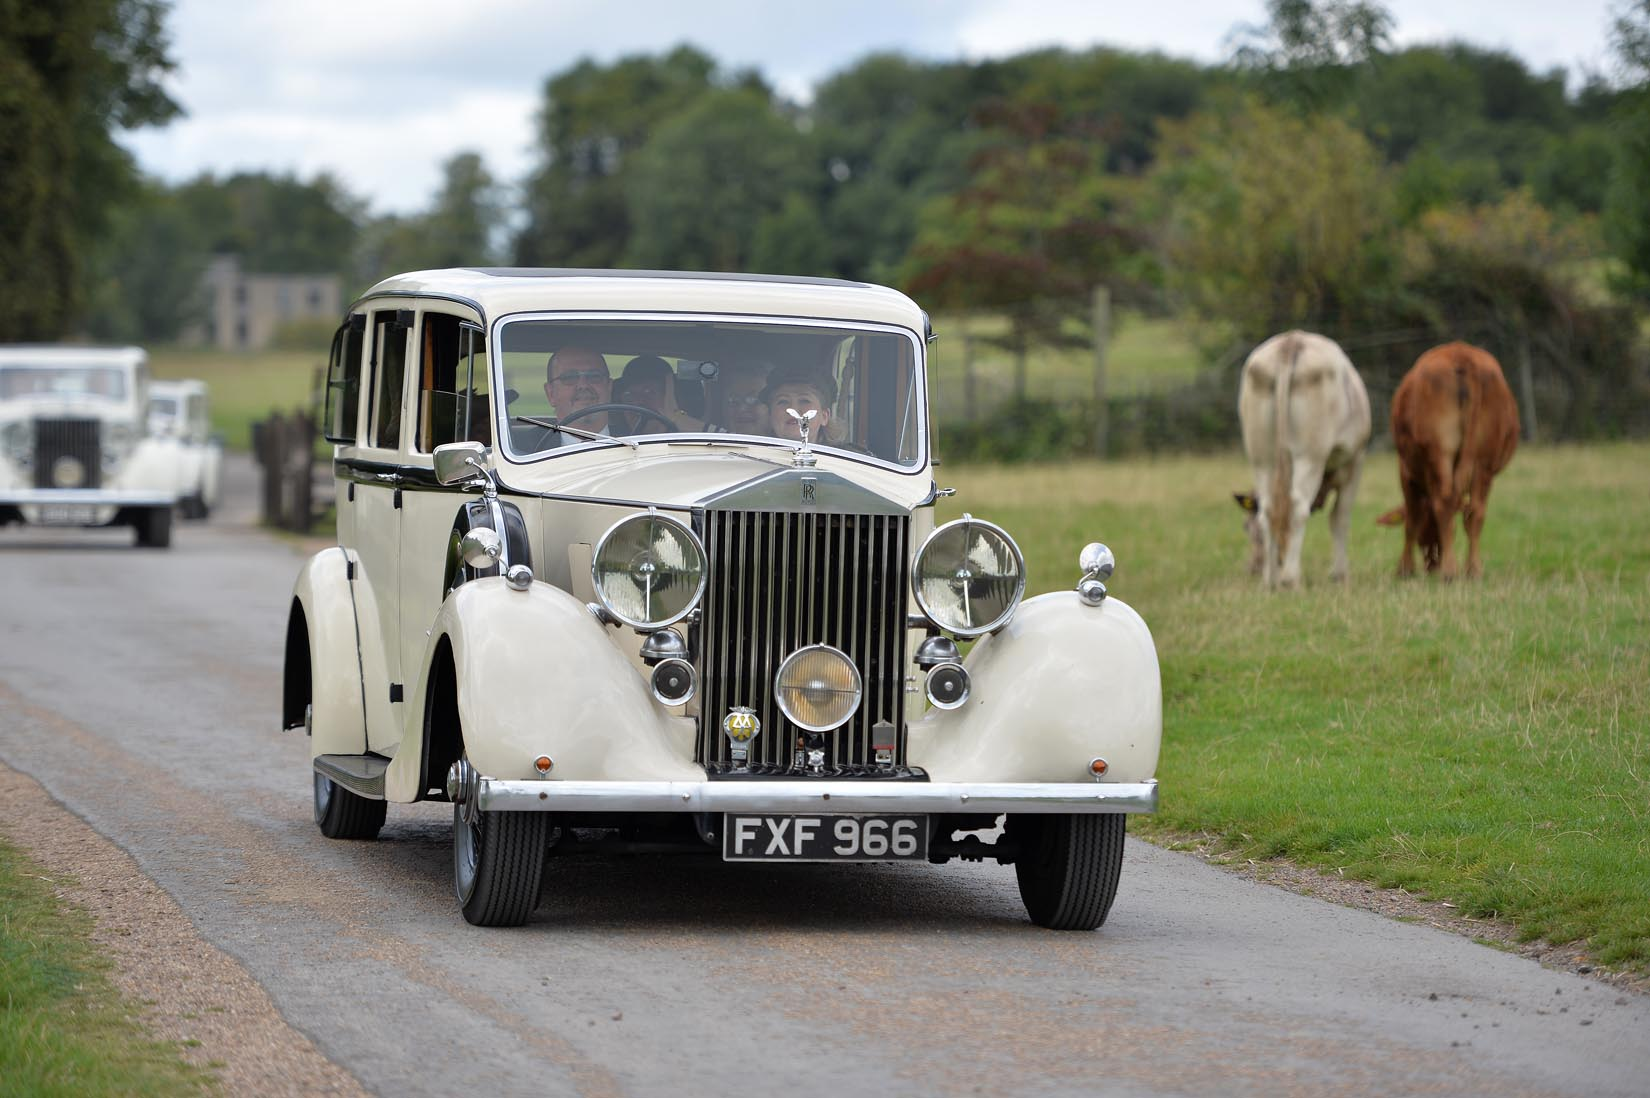 Arriving in style to the party in a fleet of Rolls-Royce's